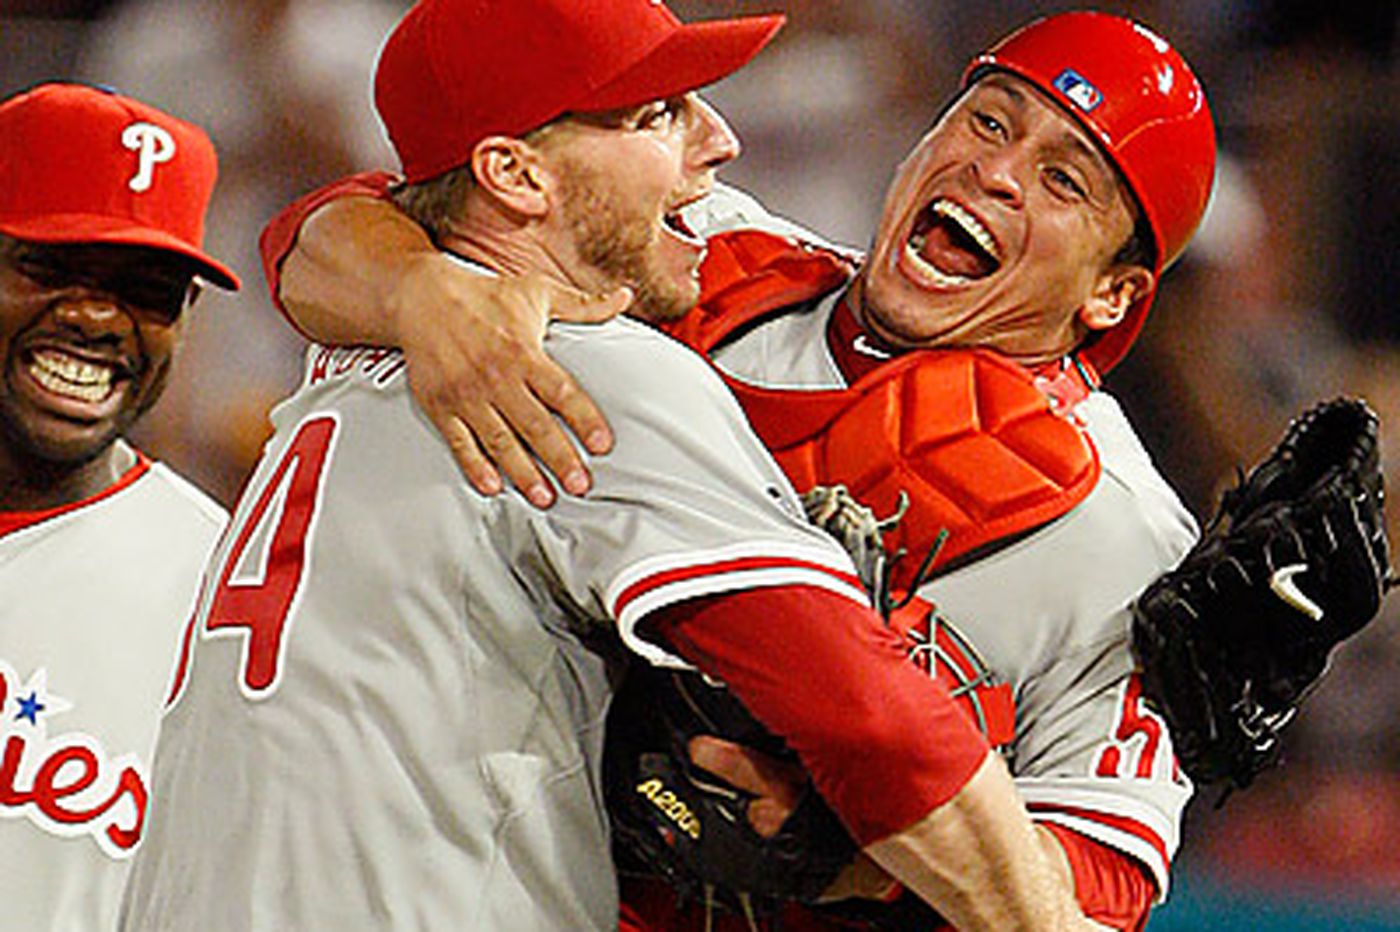 Stan Hochman: Bunning reflects on two perfect games in Phillies history